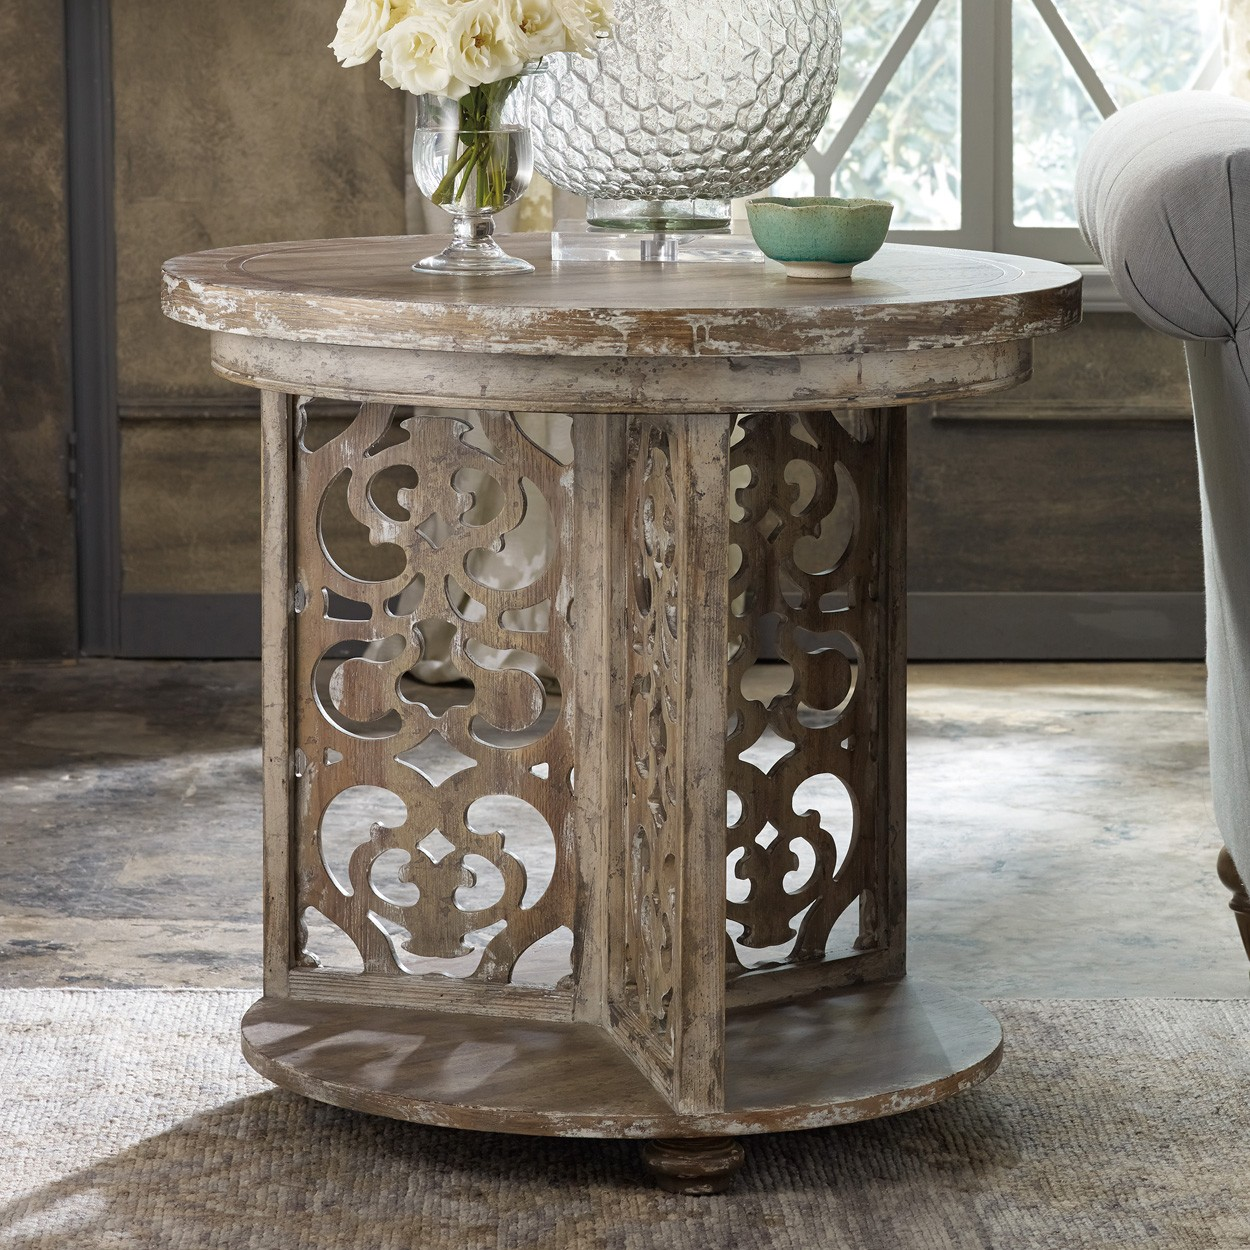 chatelet wood round accent table caramel froth humble abode roundaccenttable caramelfroth hookerfurniture white contemporary coffee natural desk chairs patio covers grey chest